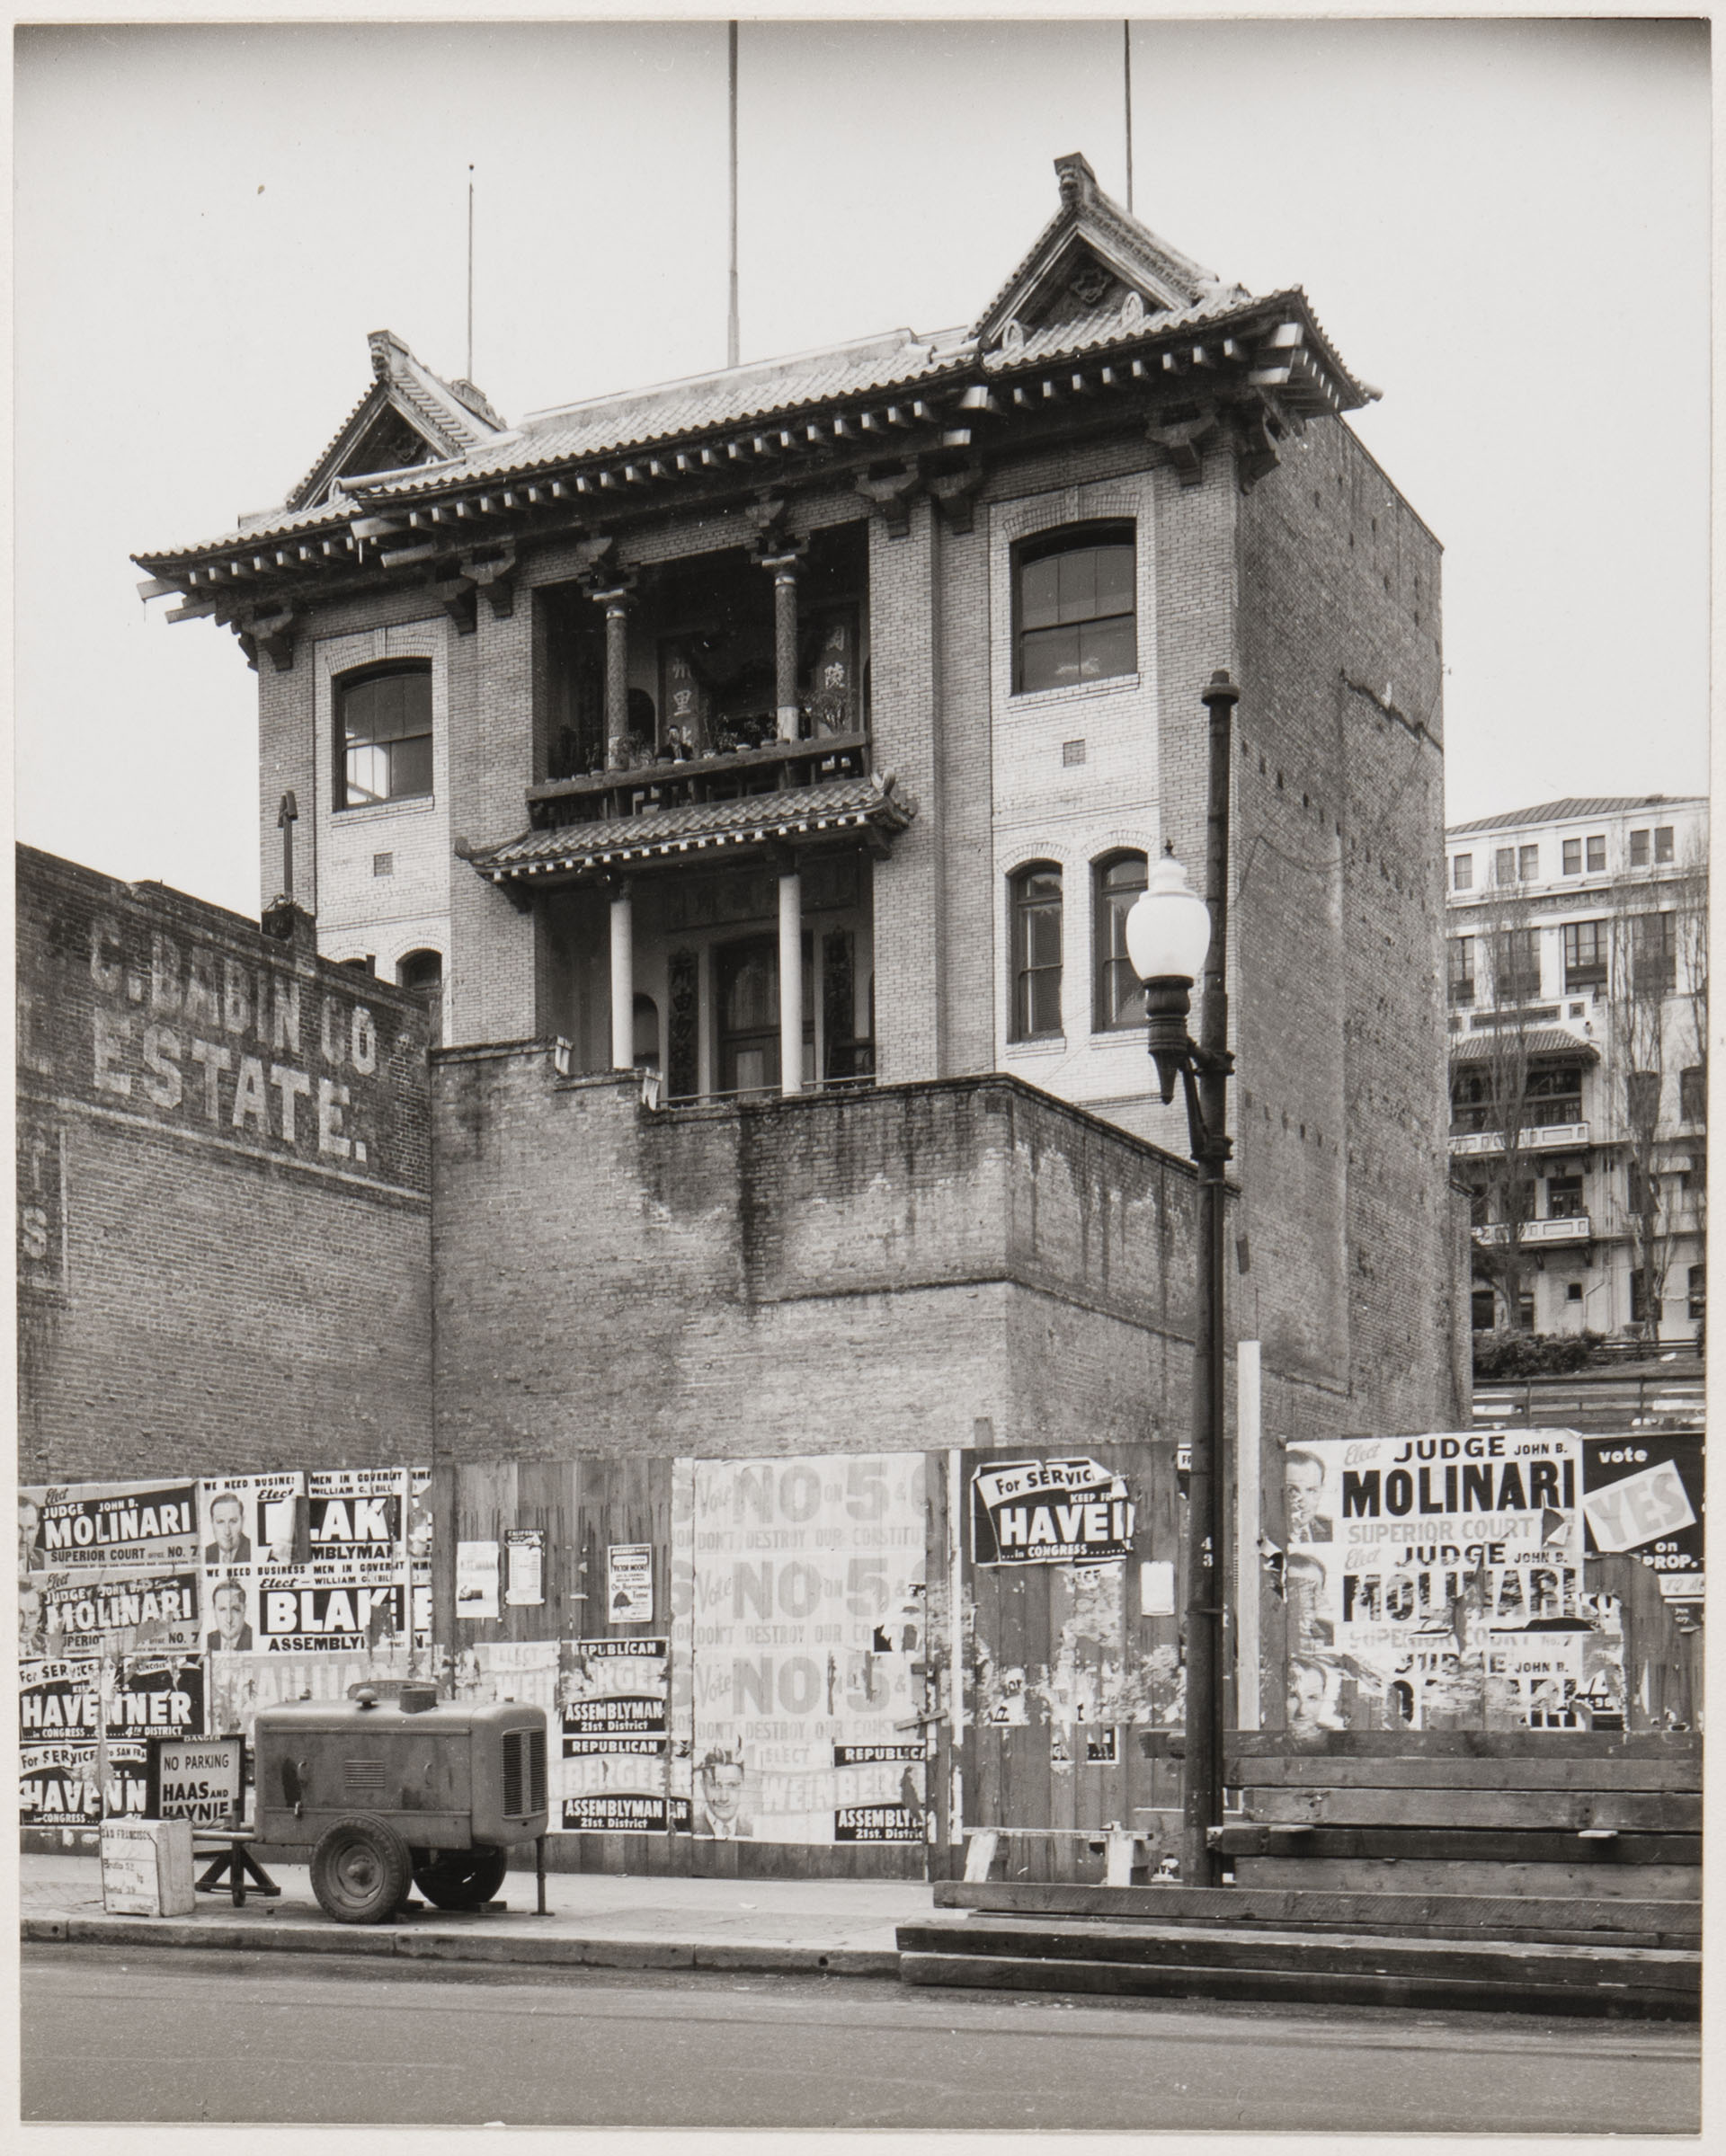 Minor White Photograph, Chinatown, San Francisco, 1953